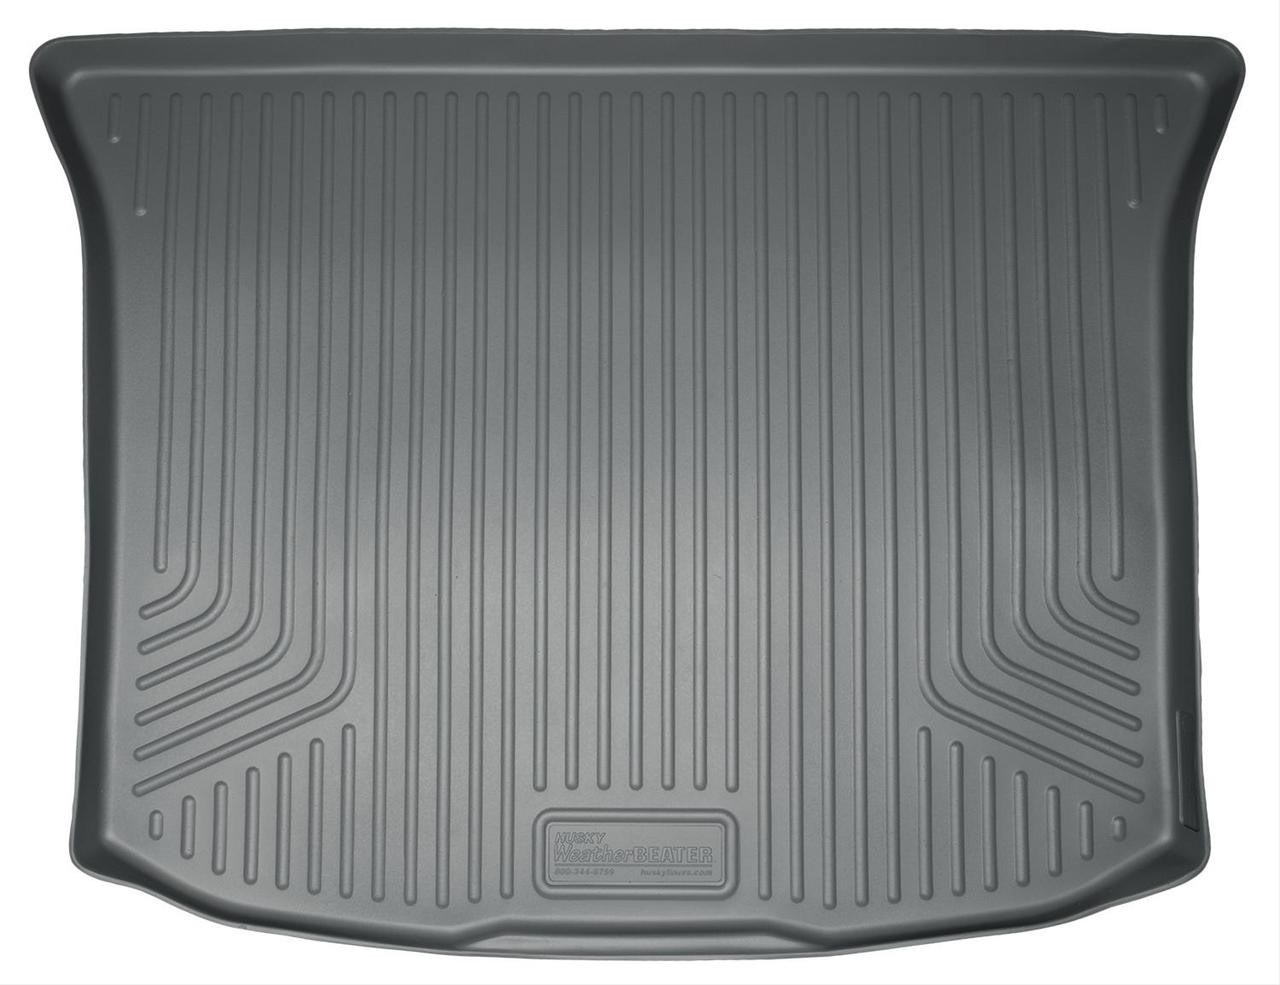 07-14 EDGE/MKX CARGO LINER WEATHERBEATER GREY